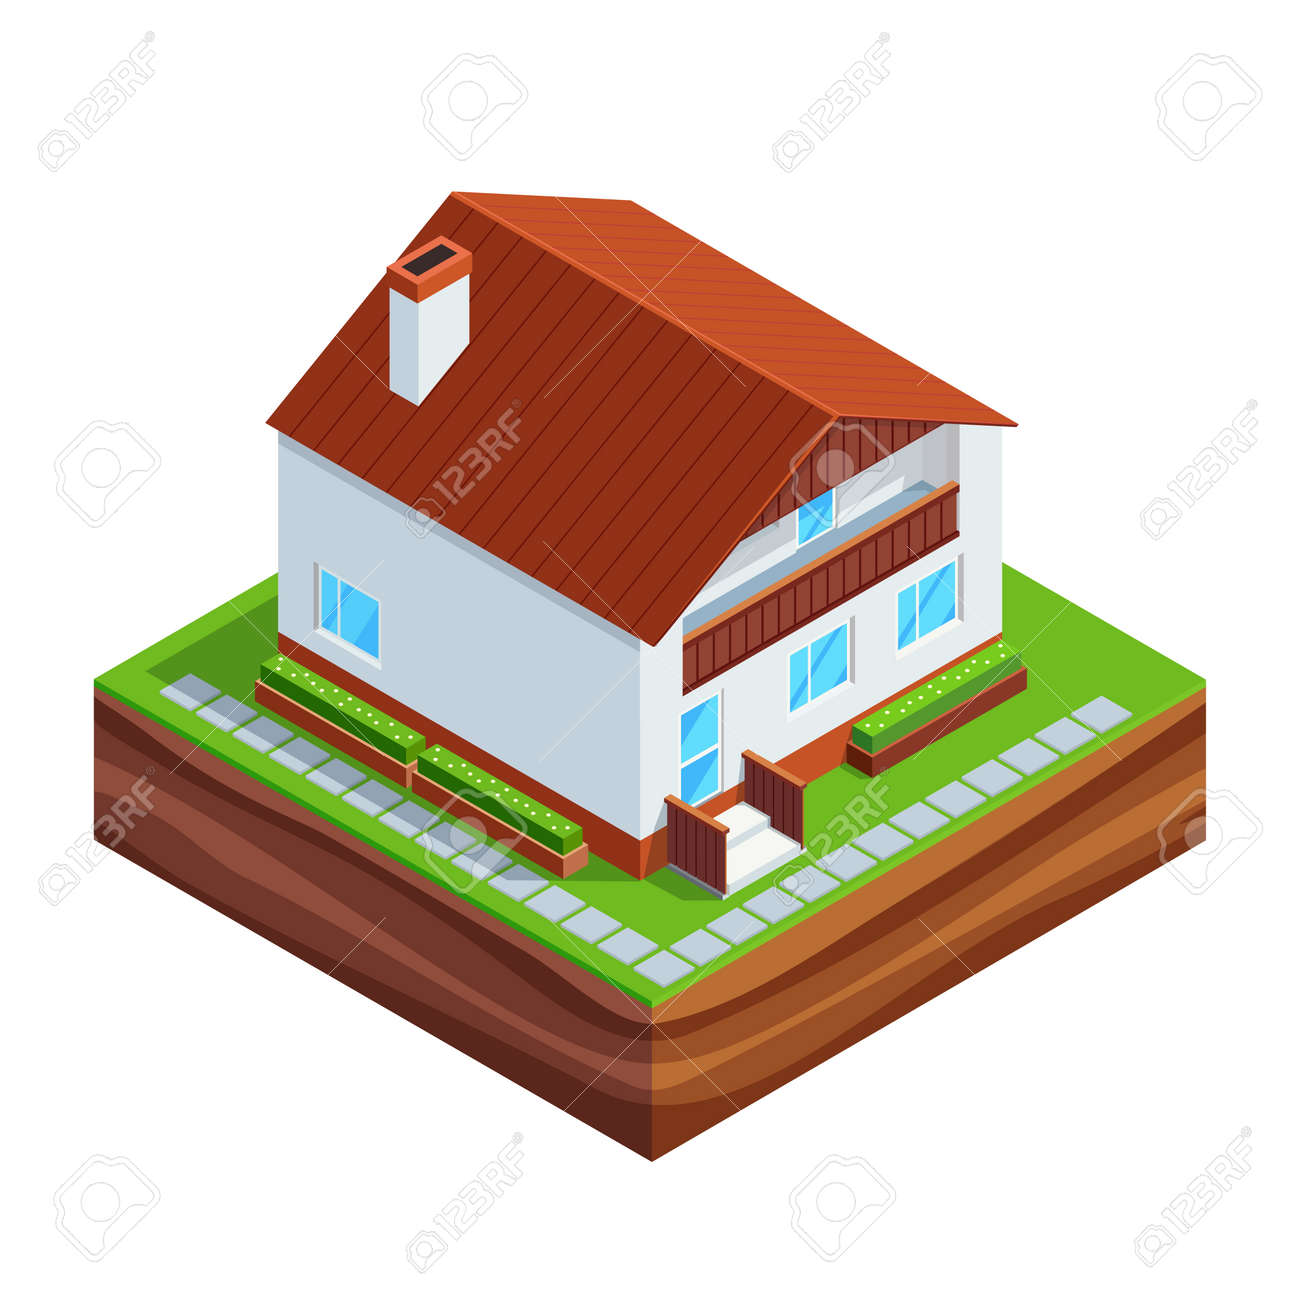 Captivating Isometric Concept Of Building A House. 3d House Full Construction Isolated  On White Background.